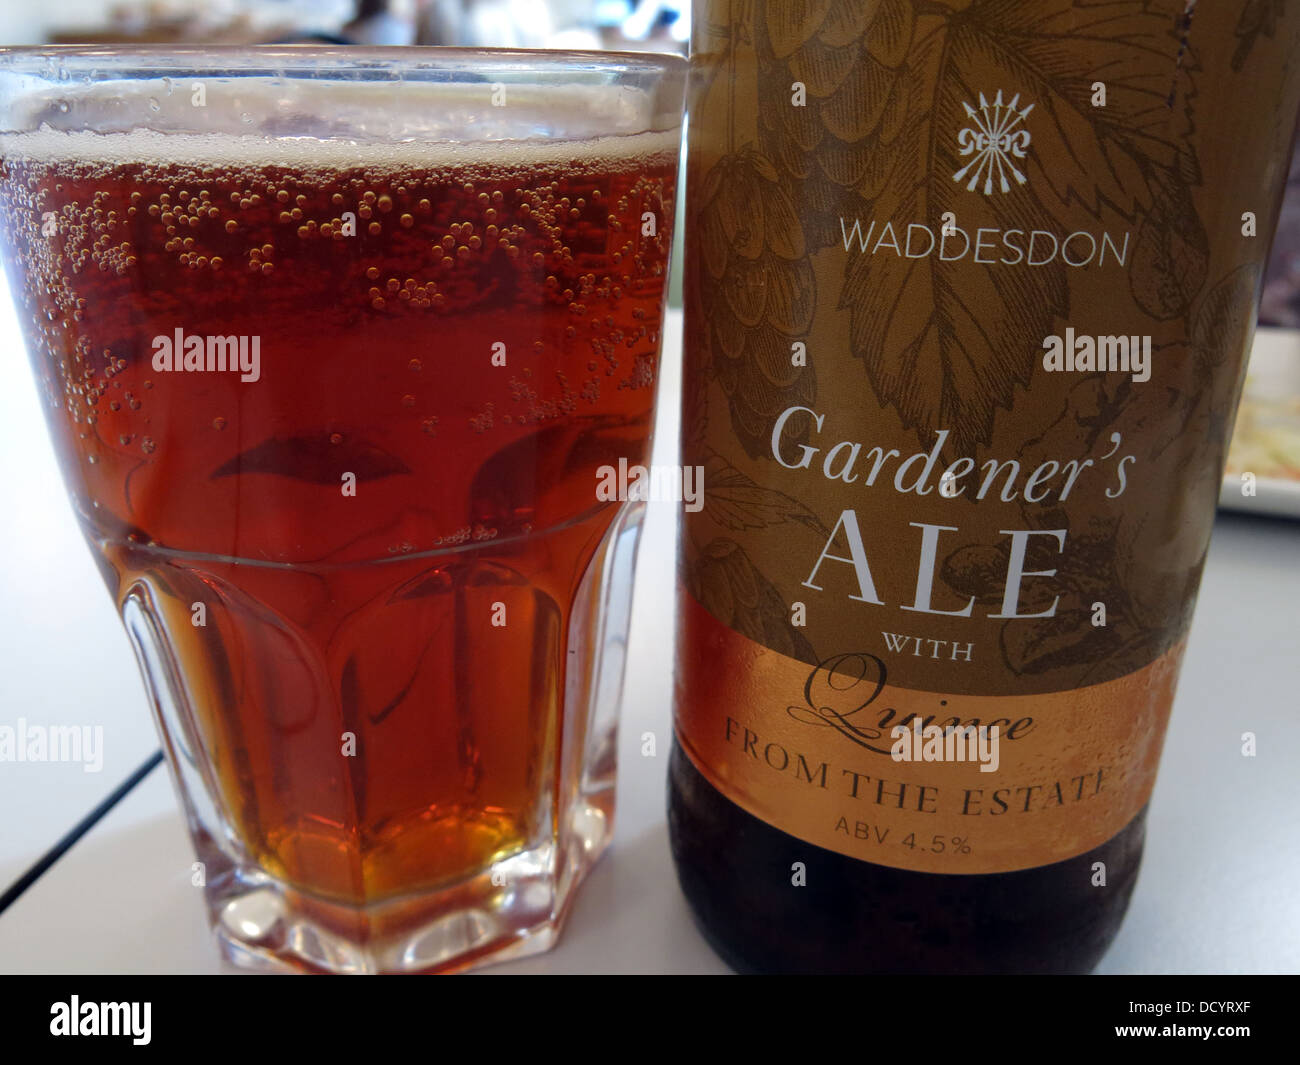 Waddesdon Gardener's ale with quince, from the estate, Bucks, England, UK Stock Photo